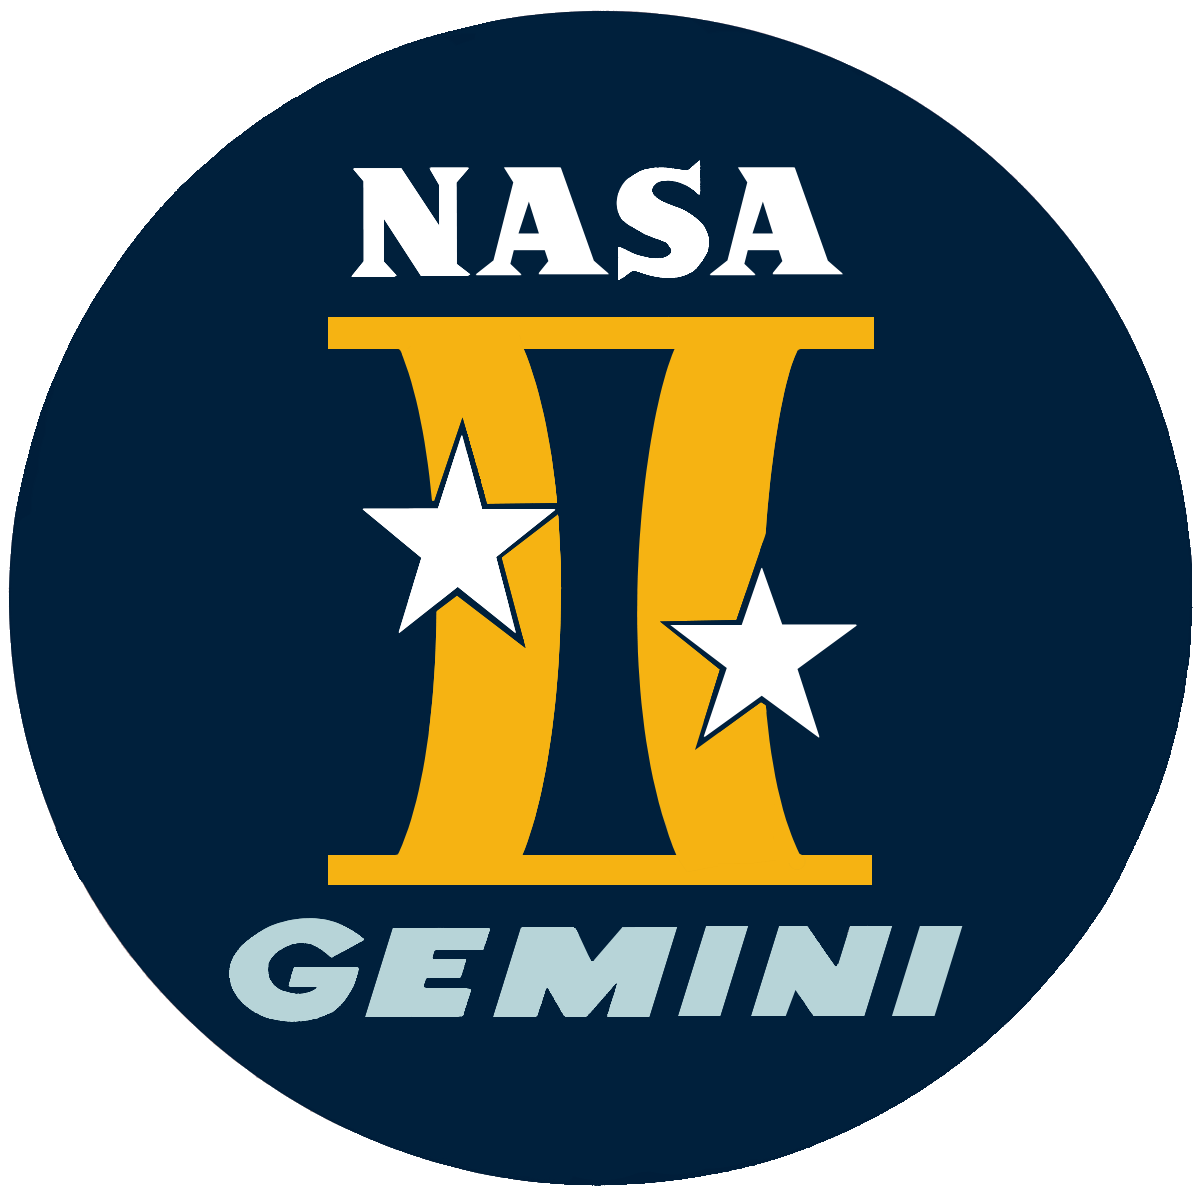 Nasa gemini, us space force logo #41316